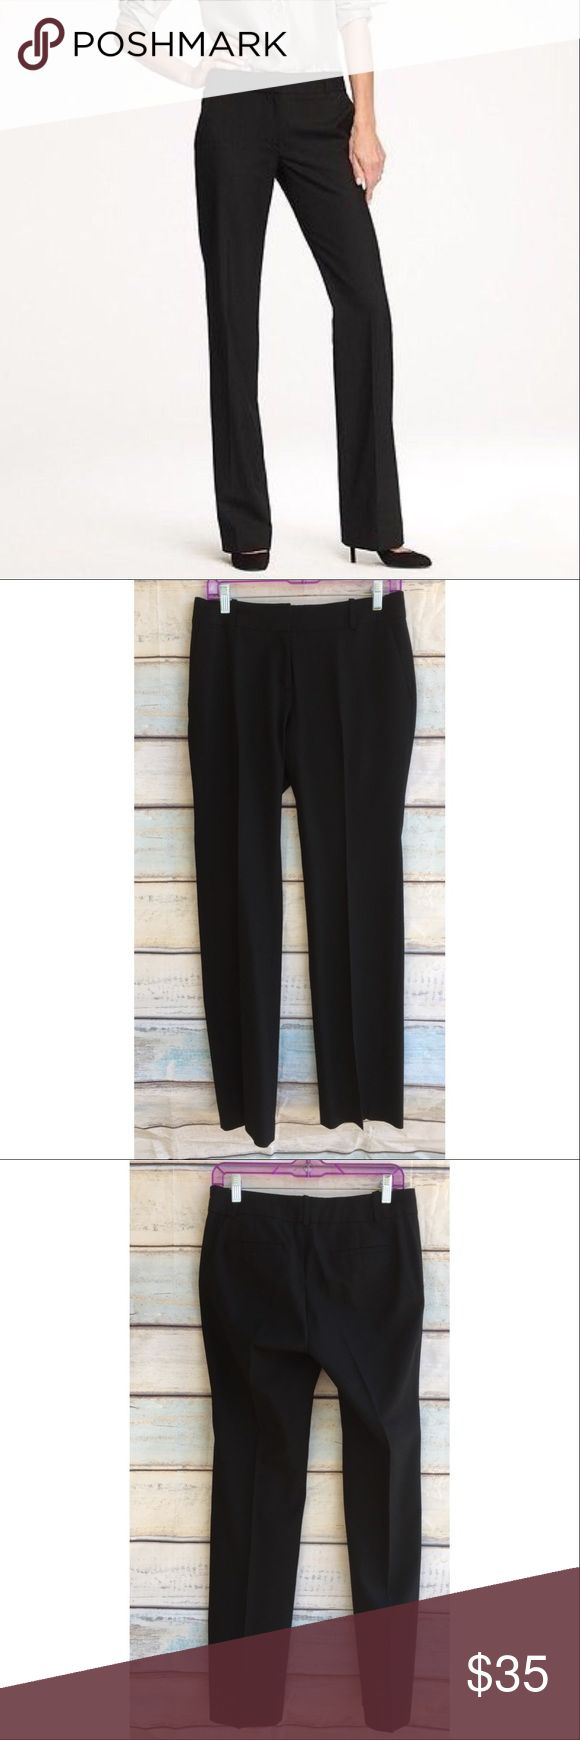 """J Crew Black 1035 Wool City Fit Dress Pant Trouser Description: These sleek pants are designed with a tailored, straight leg that's both polished and flattering. This pair is made from our four-season Super 120s wool.   Super 120s merino wool. Slant pockets, back welt pockets. Unlined. Dry clean.  Approximate Measurements (laying flat): Waist 15.5"""" Rise 8.5"""" Inseam 33""""  Condition: Very good pre-owned condition, no flaws. Fabric: 100% merino wool Designer: J Crew J. Crew Pants Trousers"""